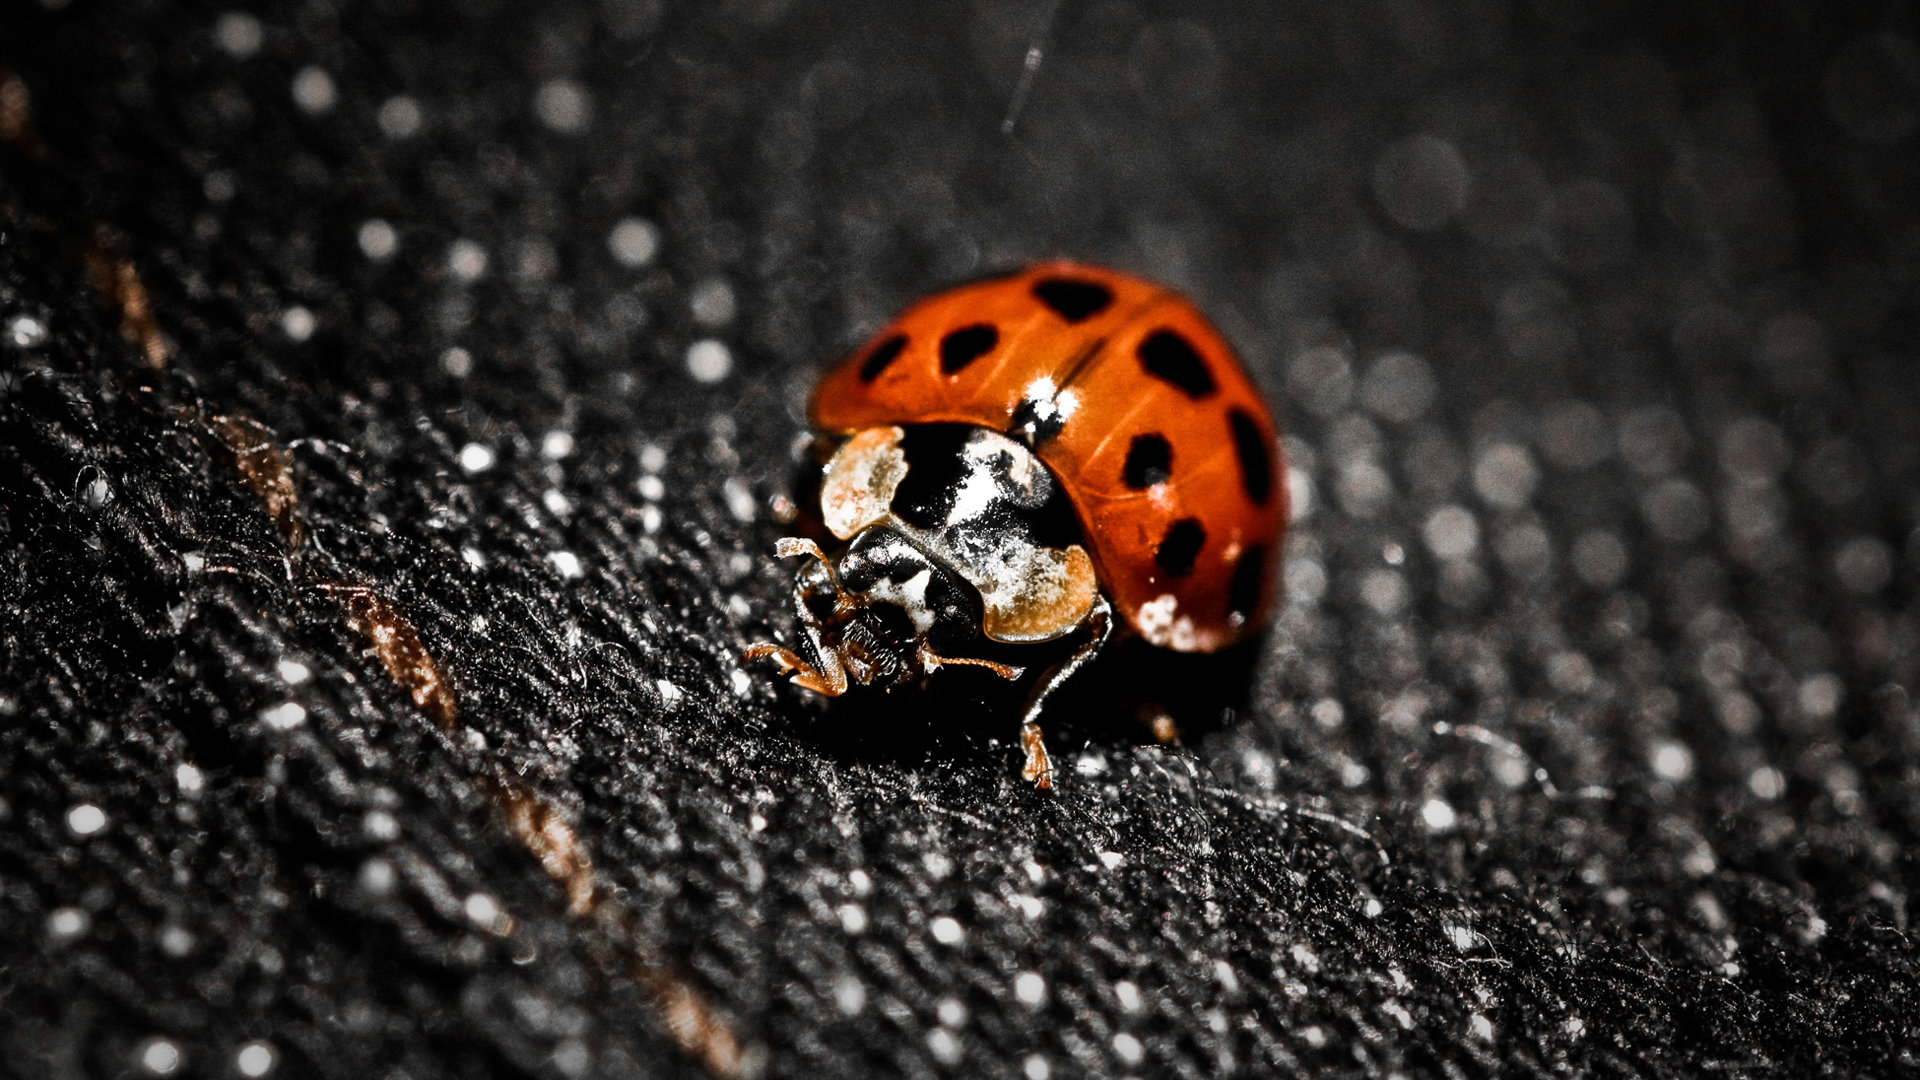 High resolution Ladybug hd 1920x1080 background ID:270325 for PC